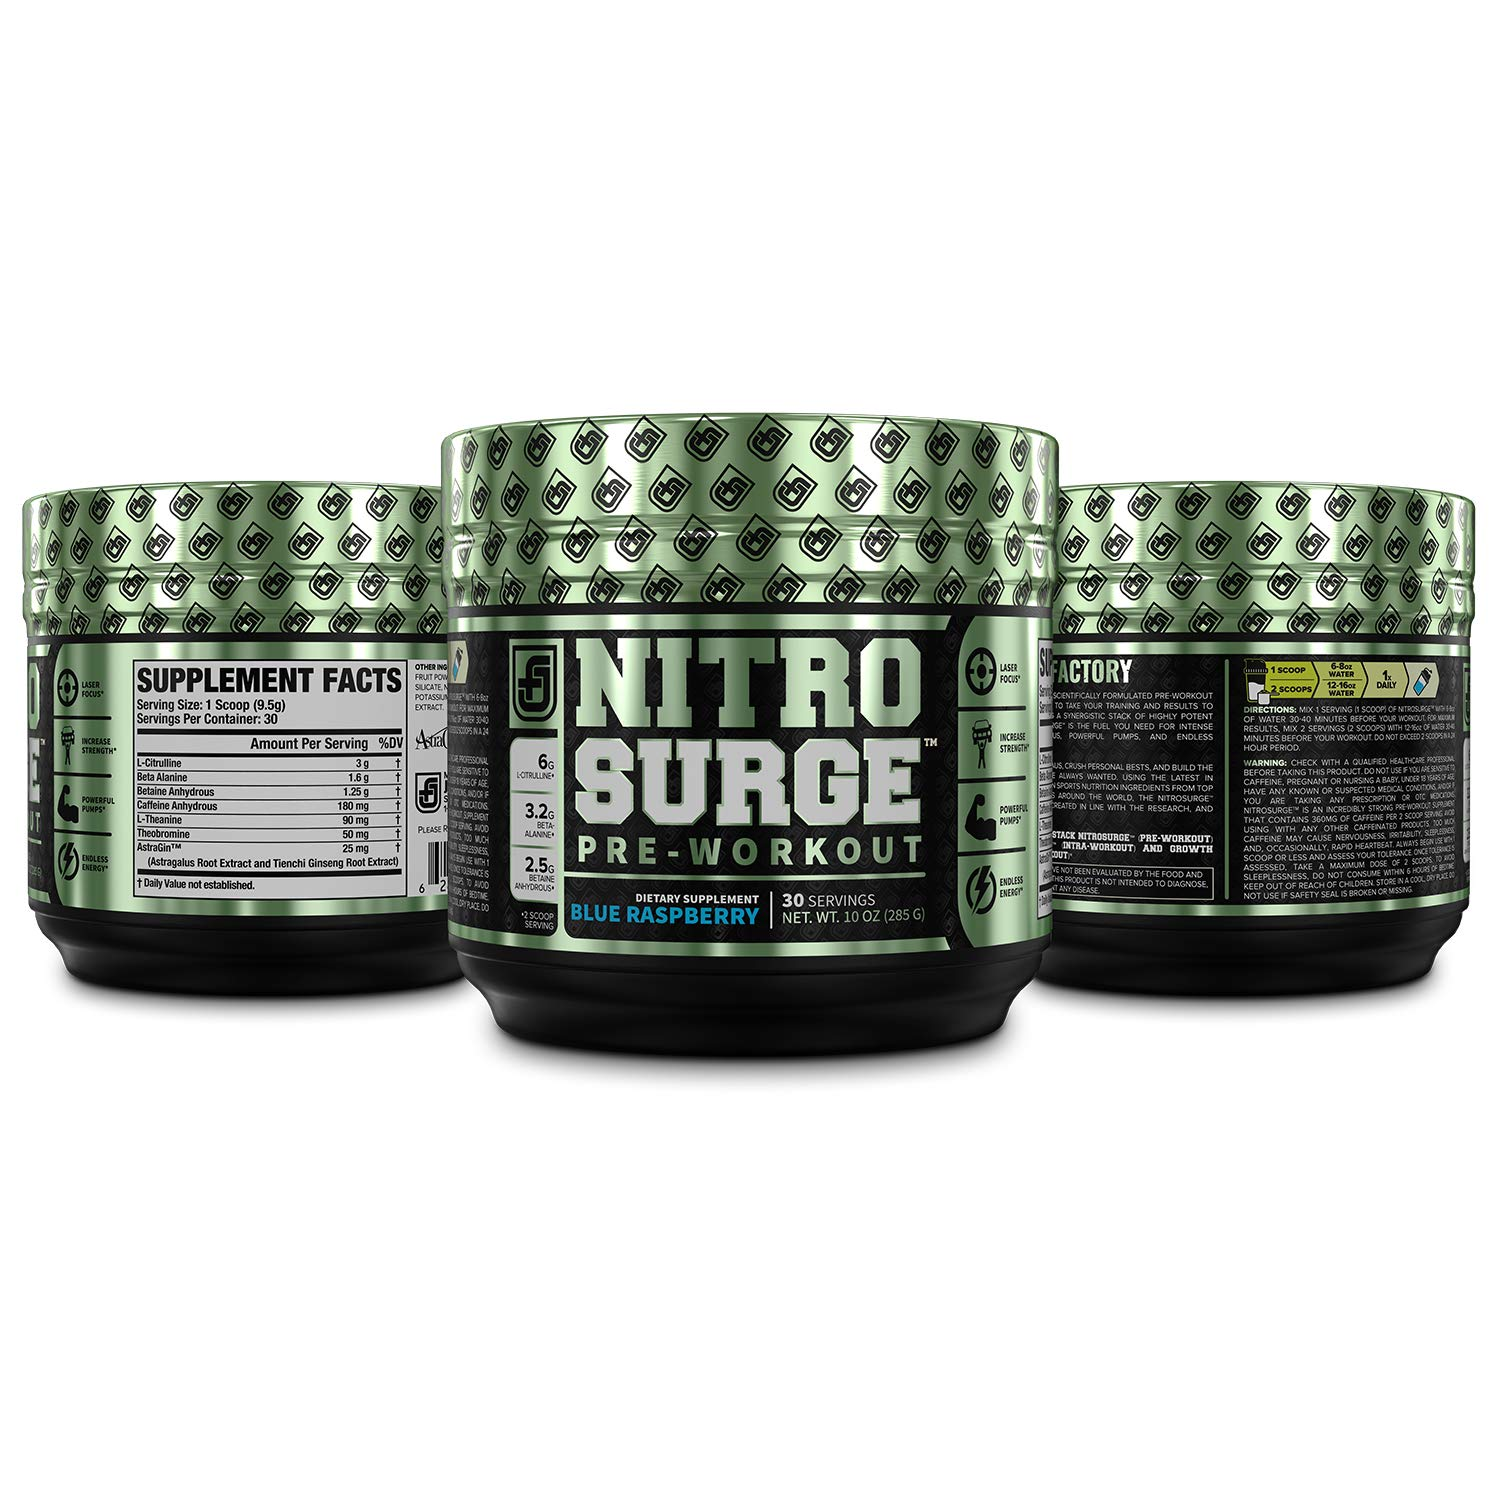 NITROSURGE Pre Workout Supplement - Endless Energy, Instant Strength Gains, Clear Focus, Intense Pumps - Nitric Oxide Booster & Powerful Preworkout Energy Powder - 30 Servings, Blue Raspberry by Jacked Factory (Image #4)